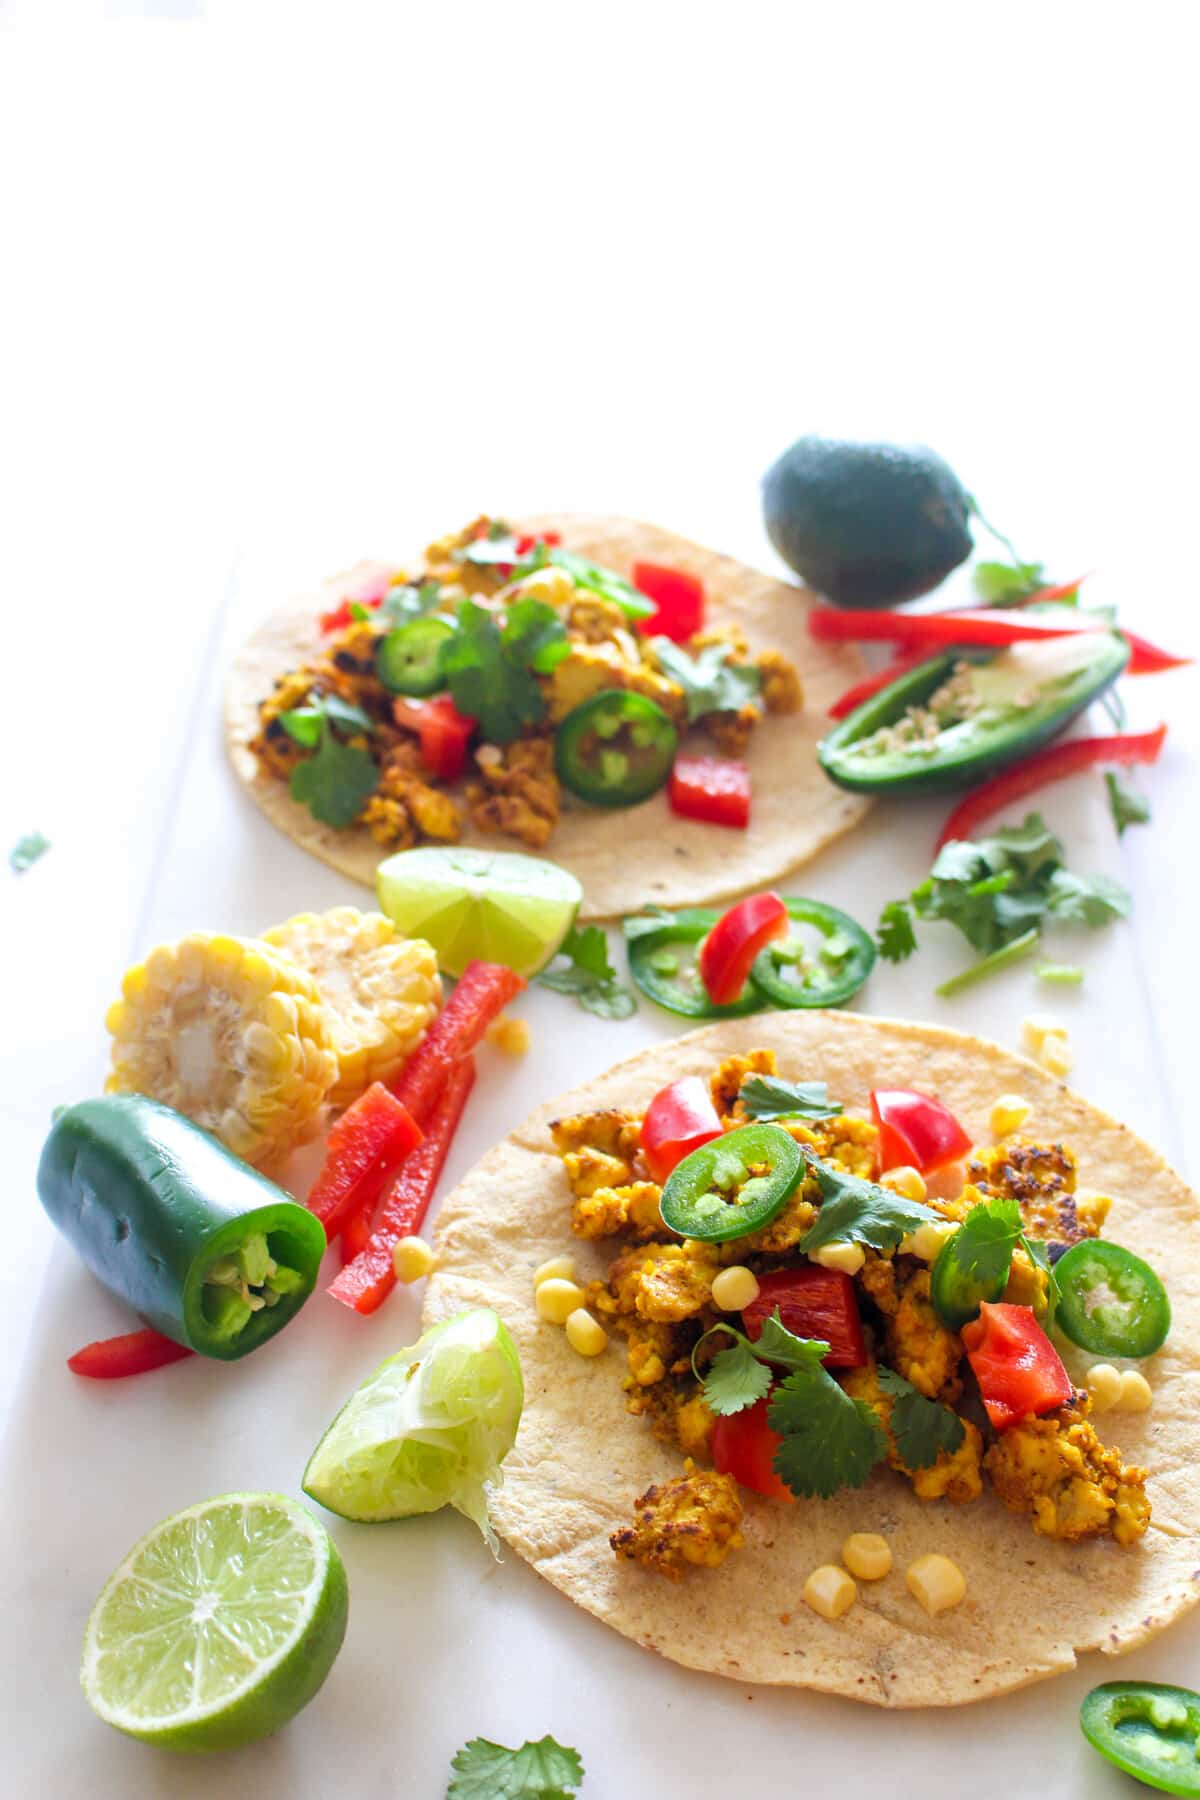 Easy tacos that are gluten-free, vegan, egg-free, dairy-free and BIG on flavor!